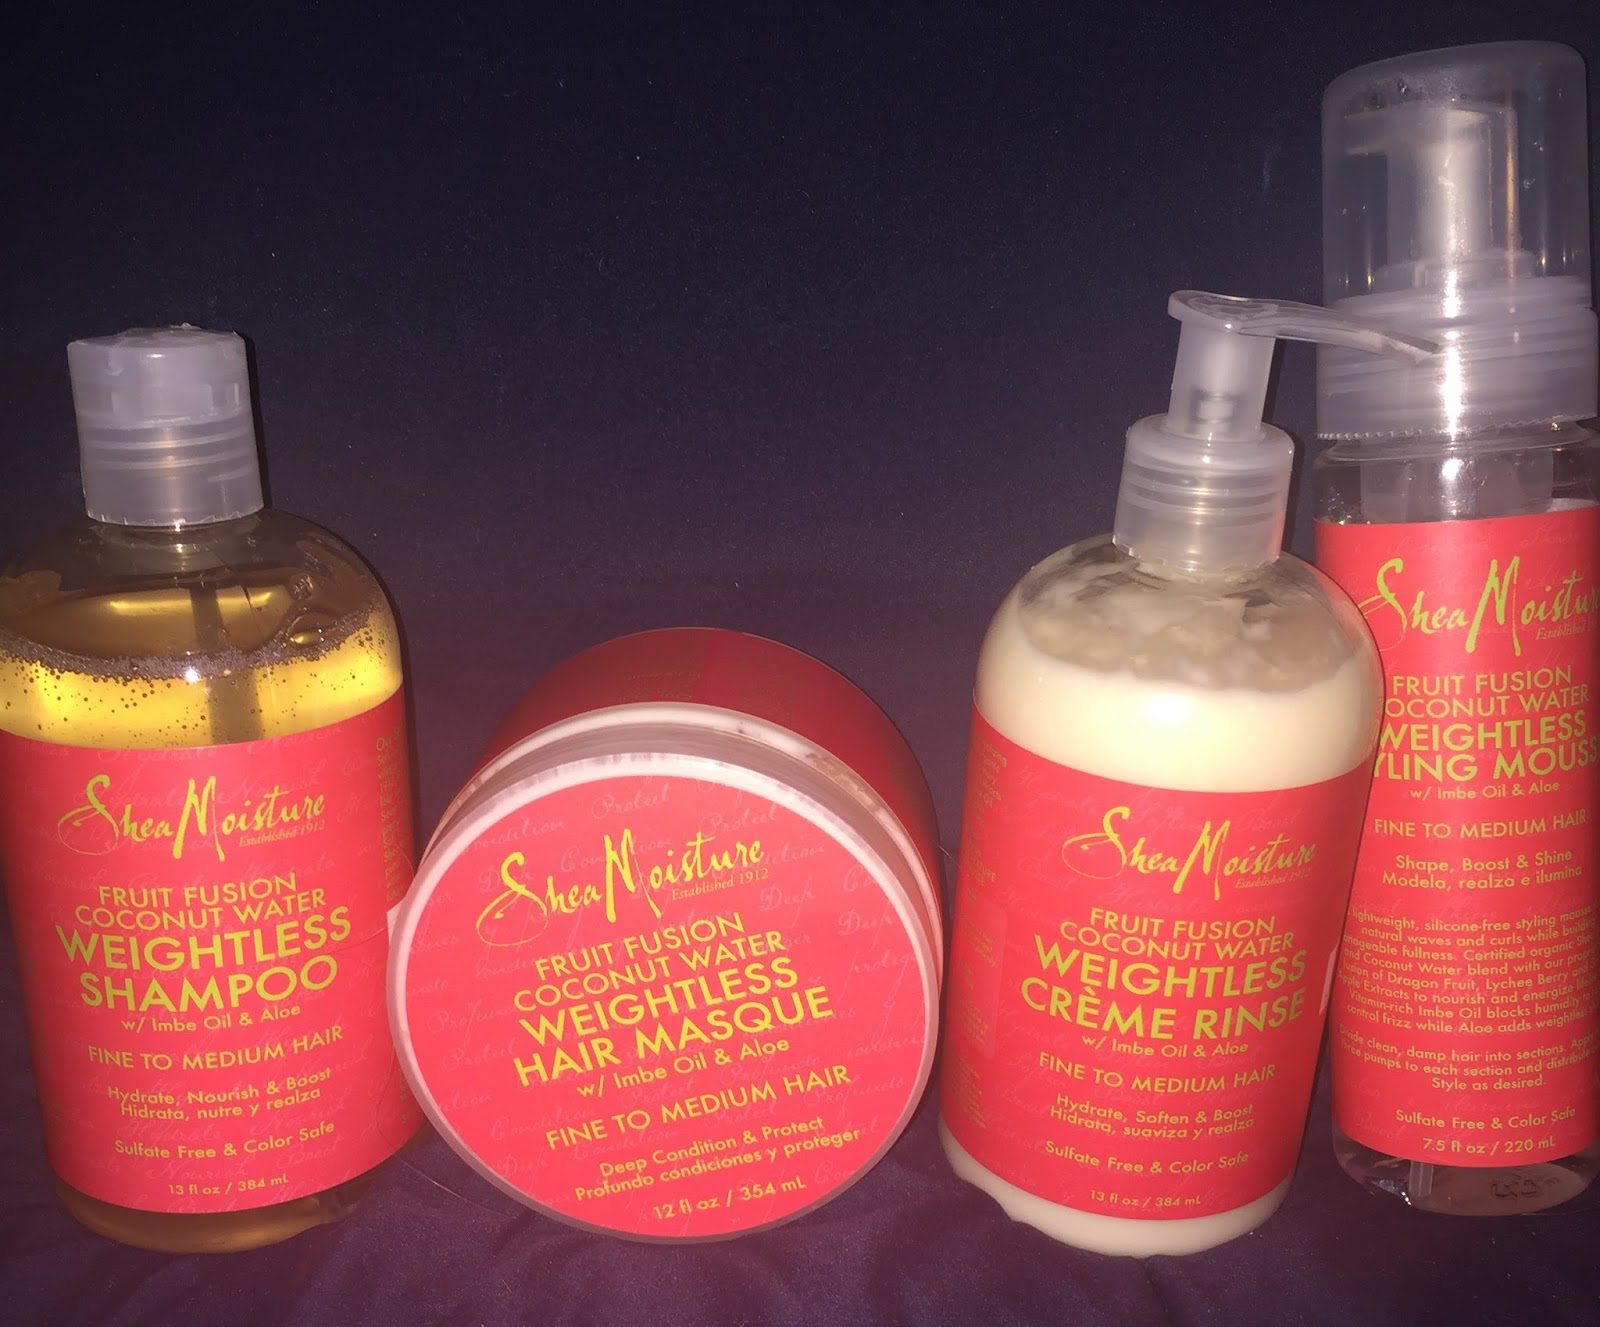 Sheamoisture Fruit Fusion Hair Care First Use First